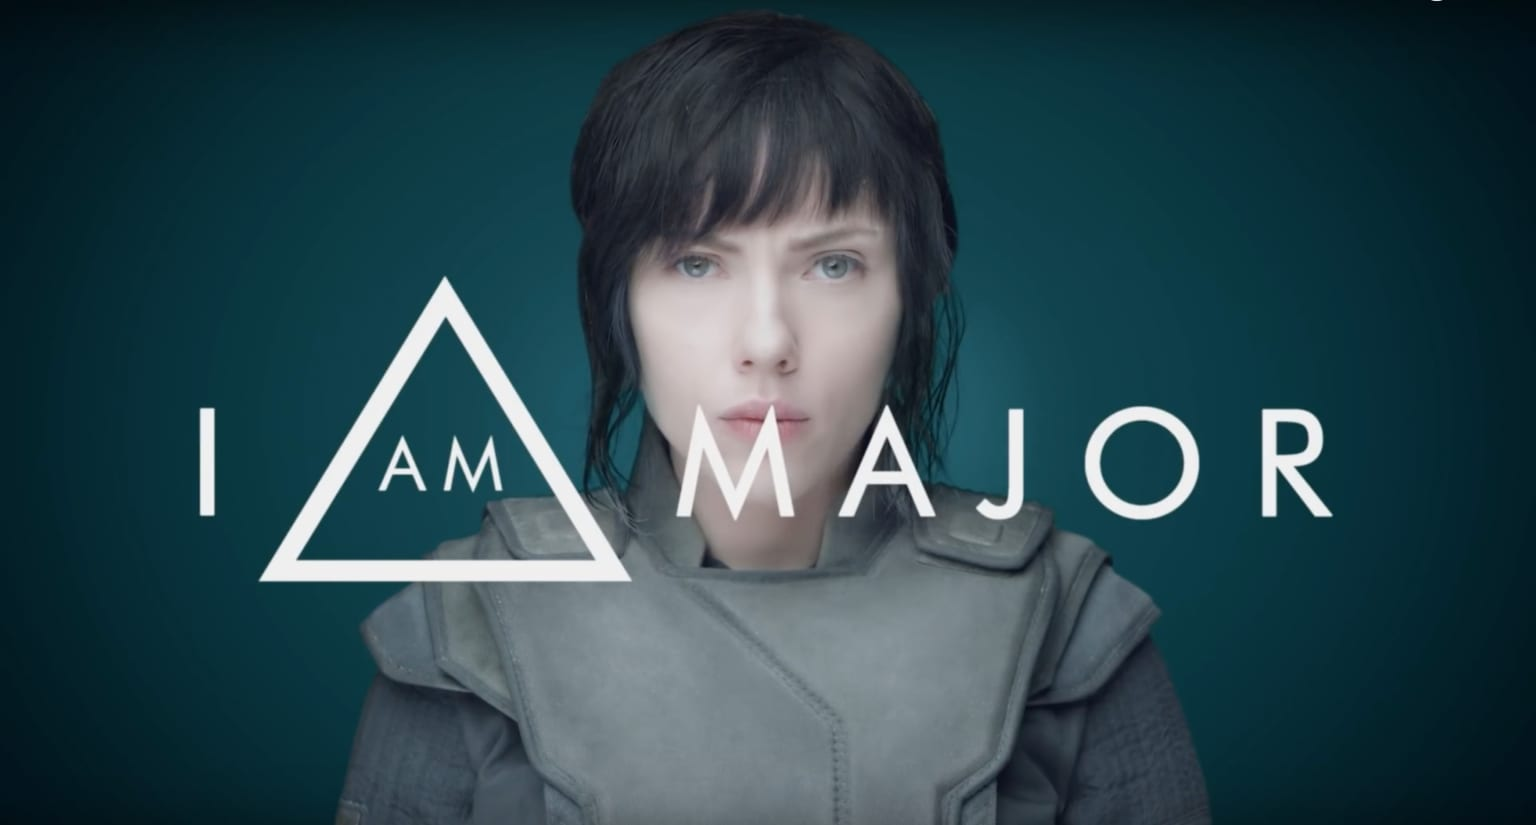 """I Am Major - Trailer for feature film """"Ghost in the Shell"""""""